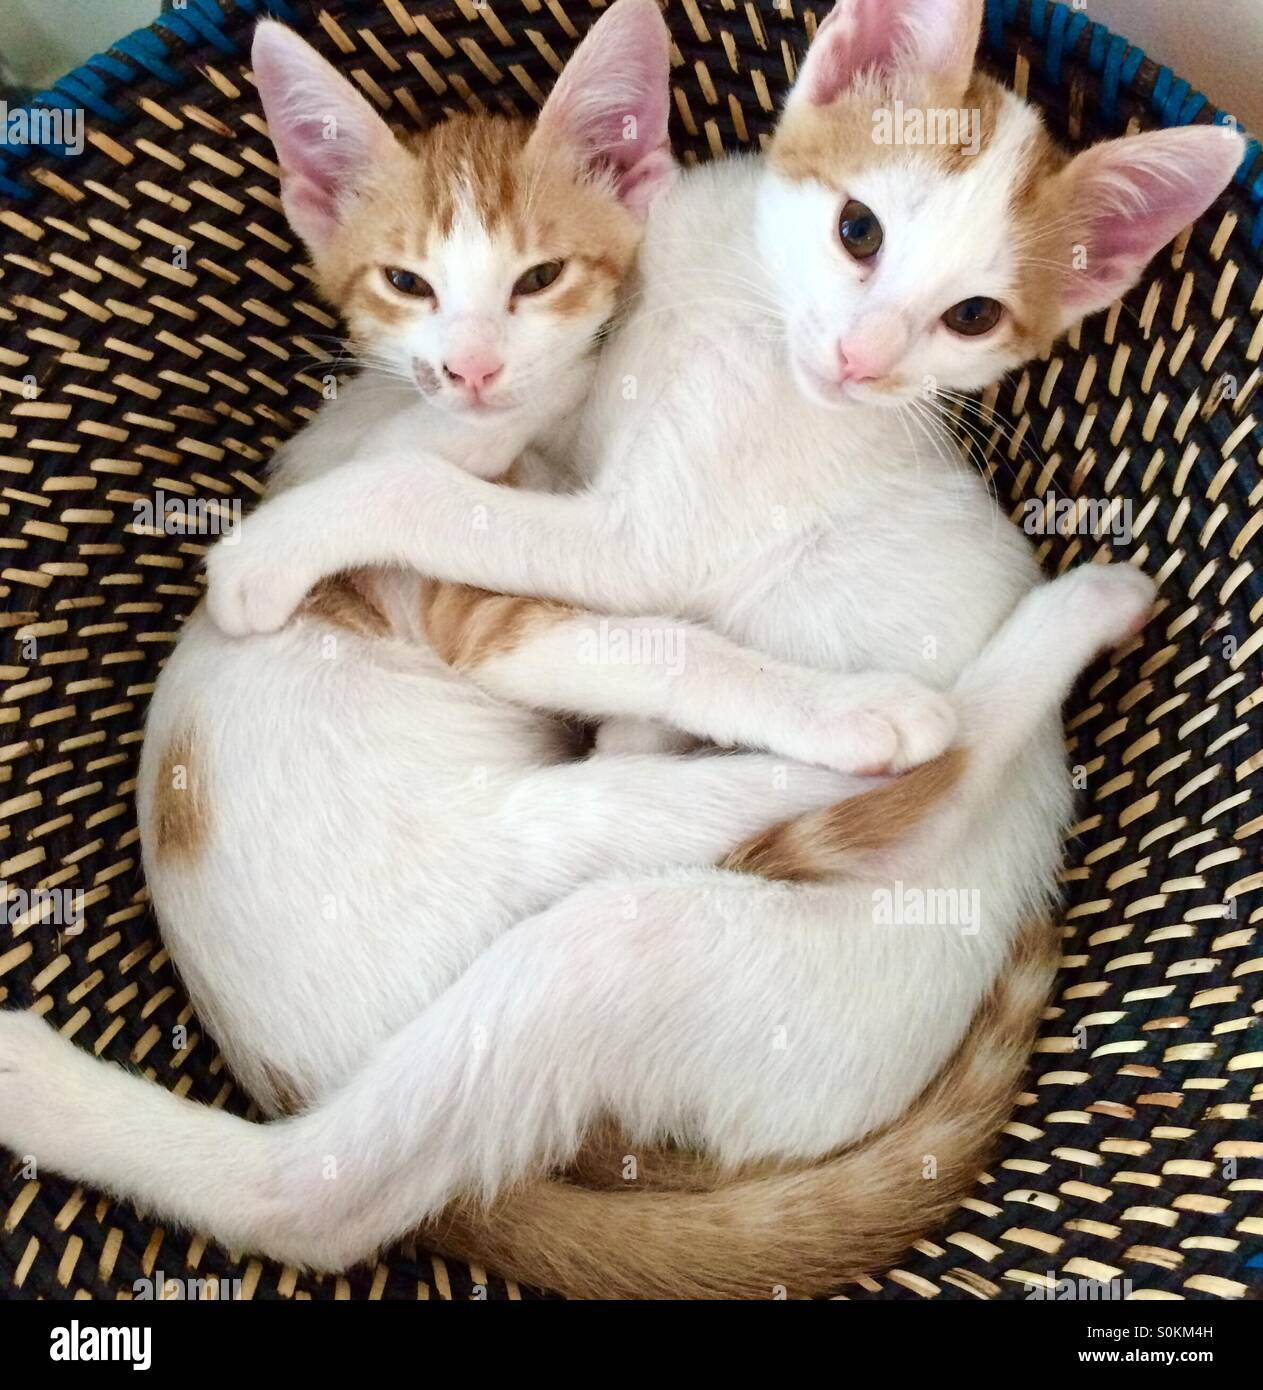 Brotherly love - Stock Image